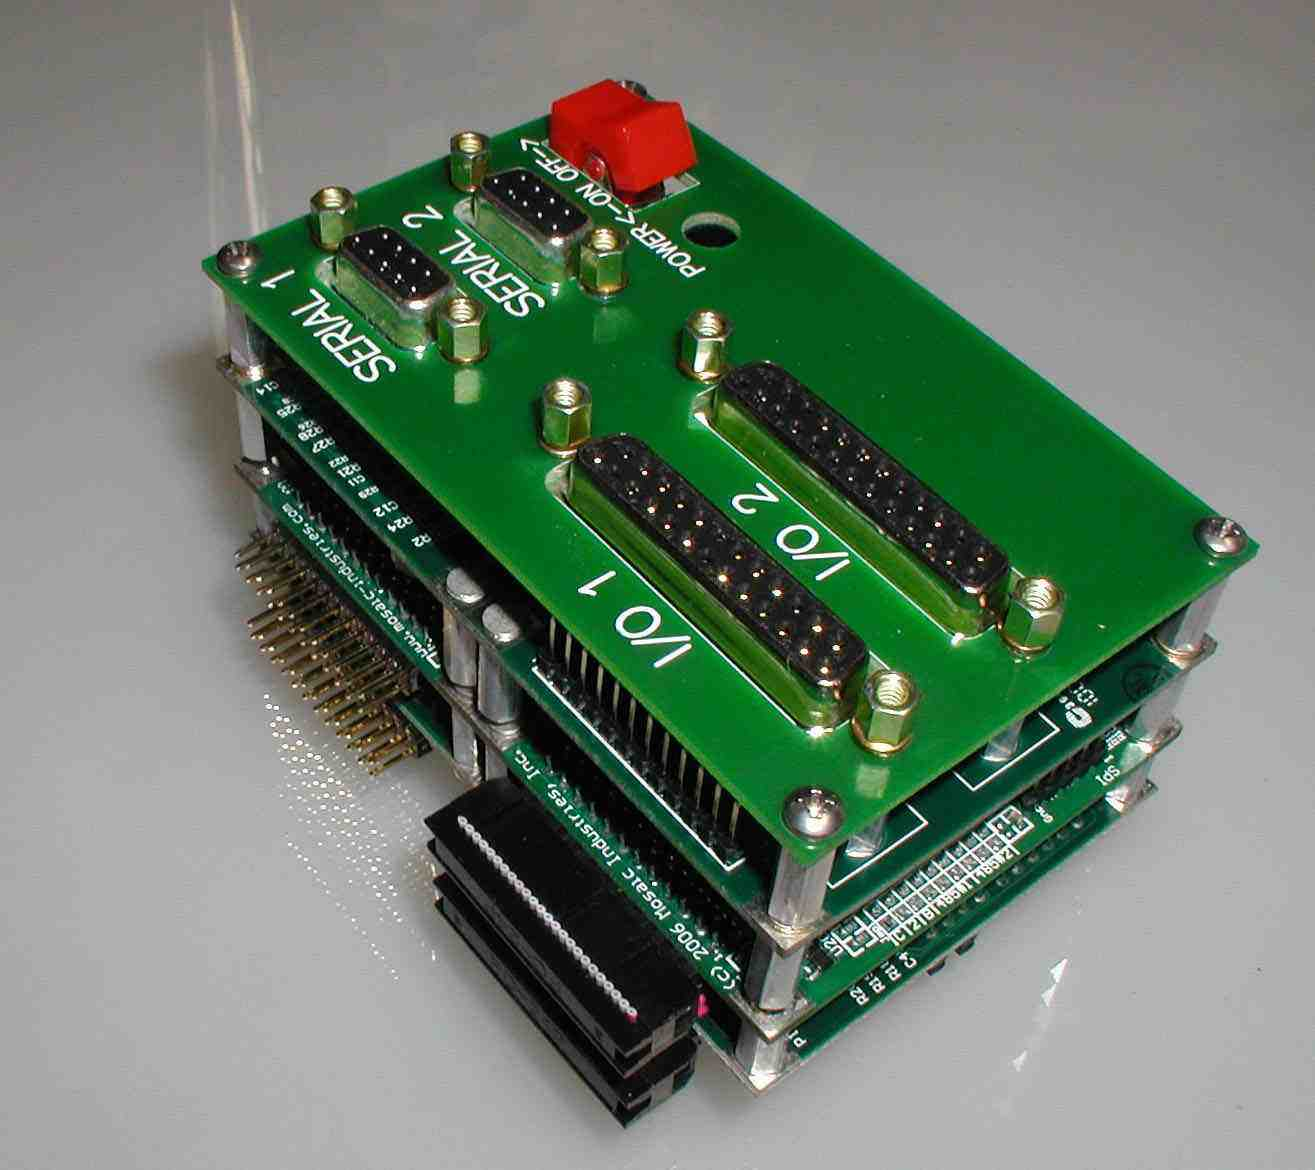 New product design with a switching power supply, I/O boards, and single board computer